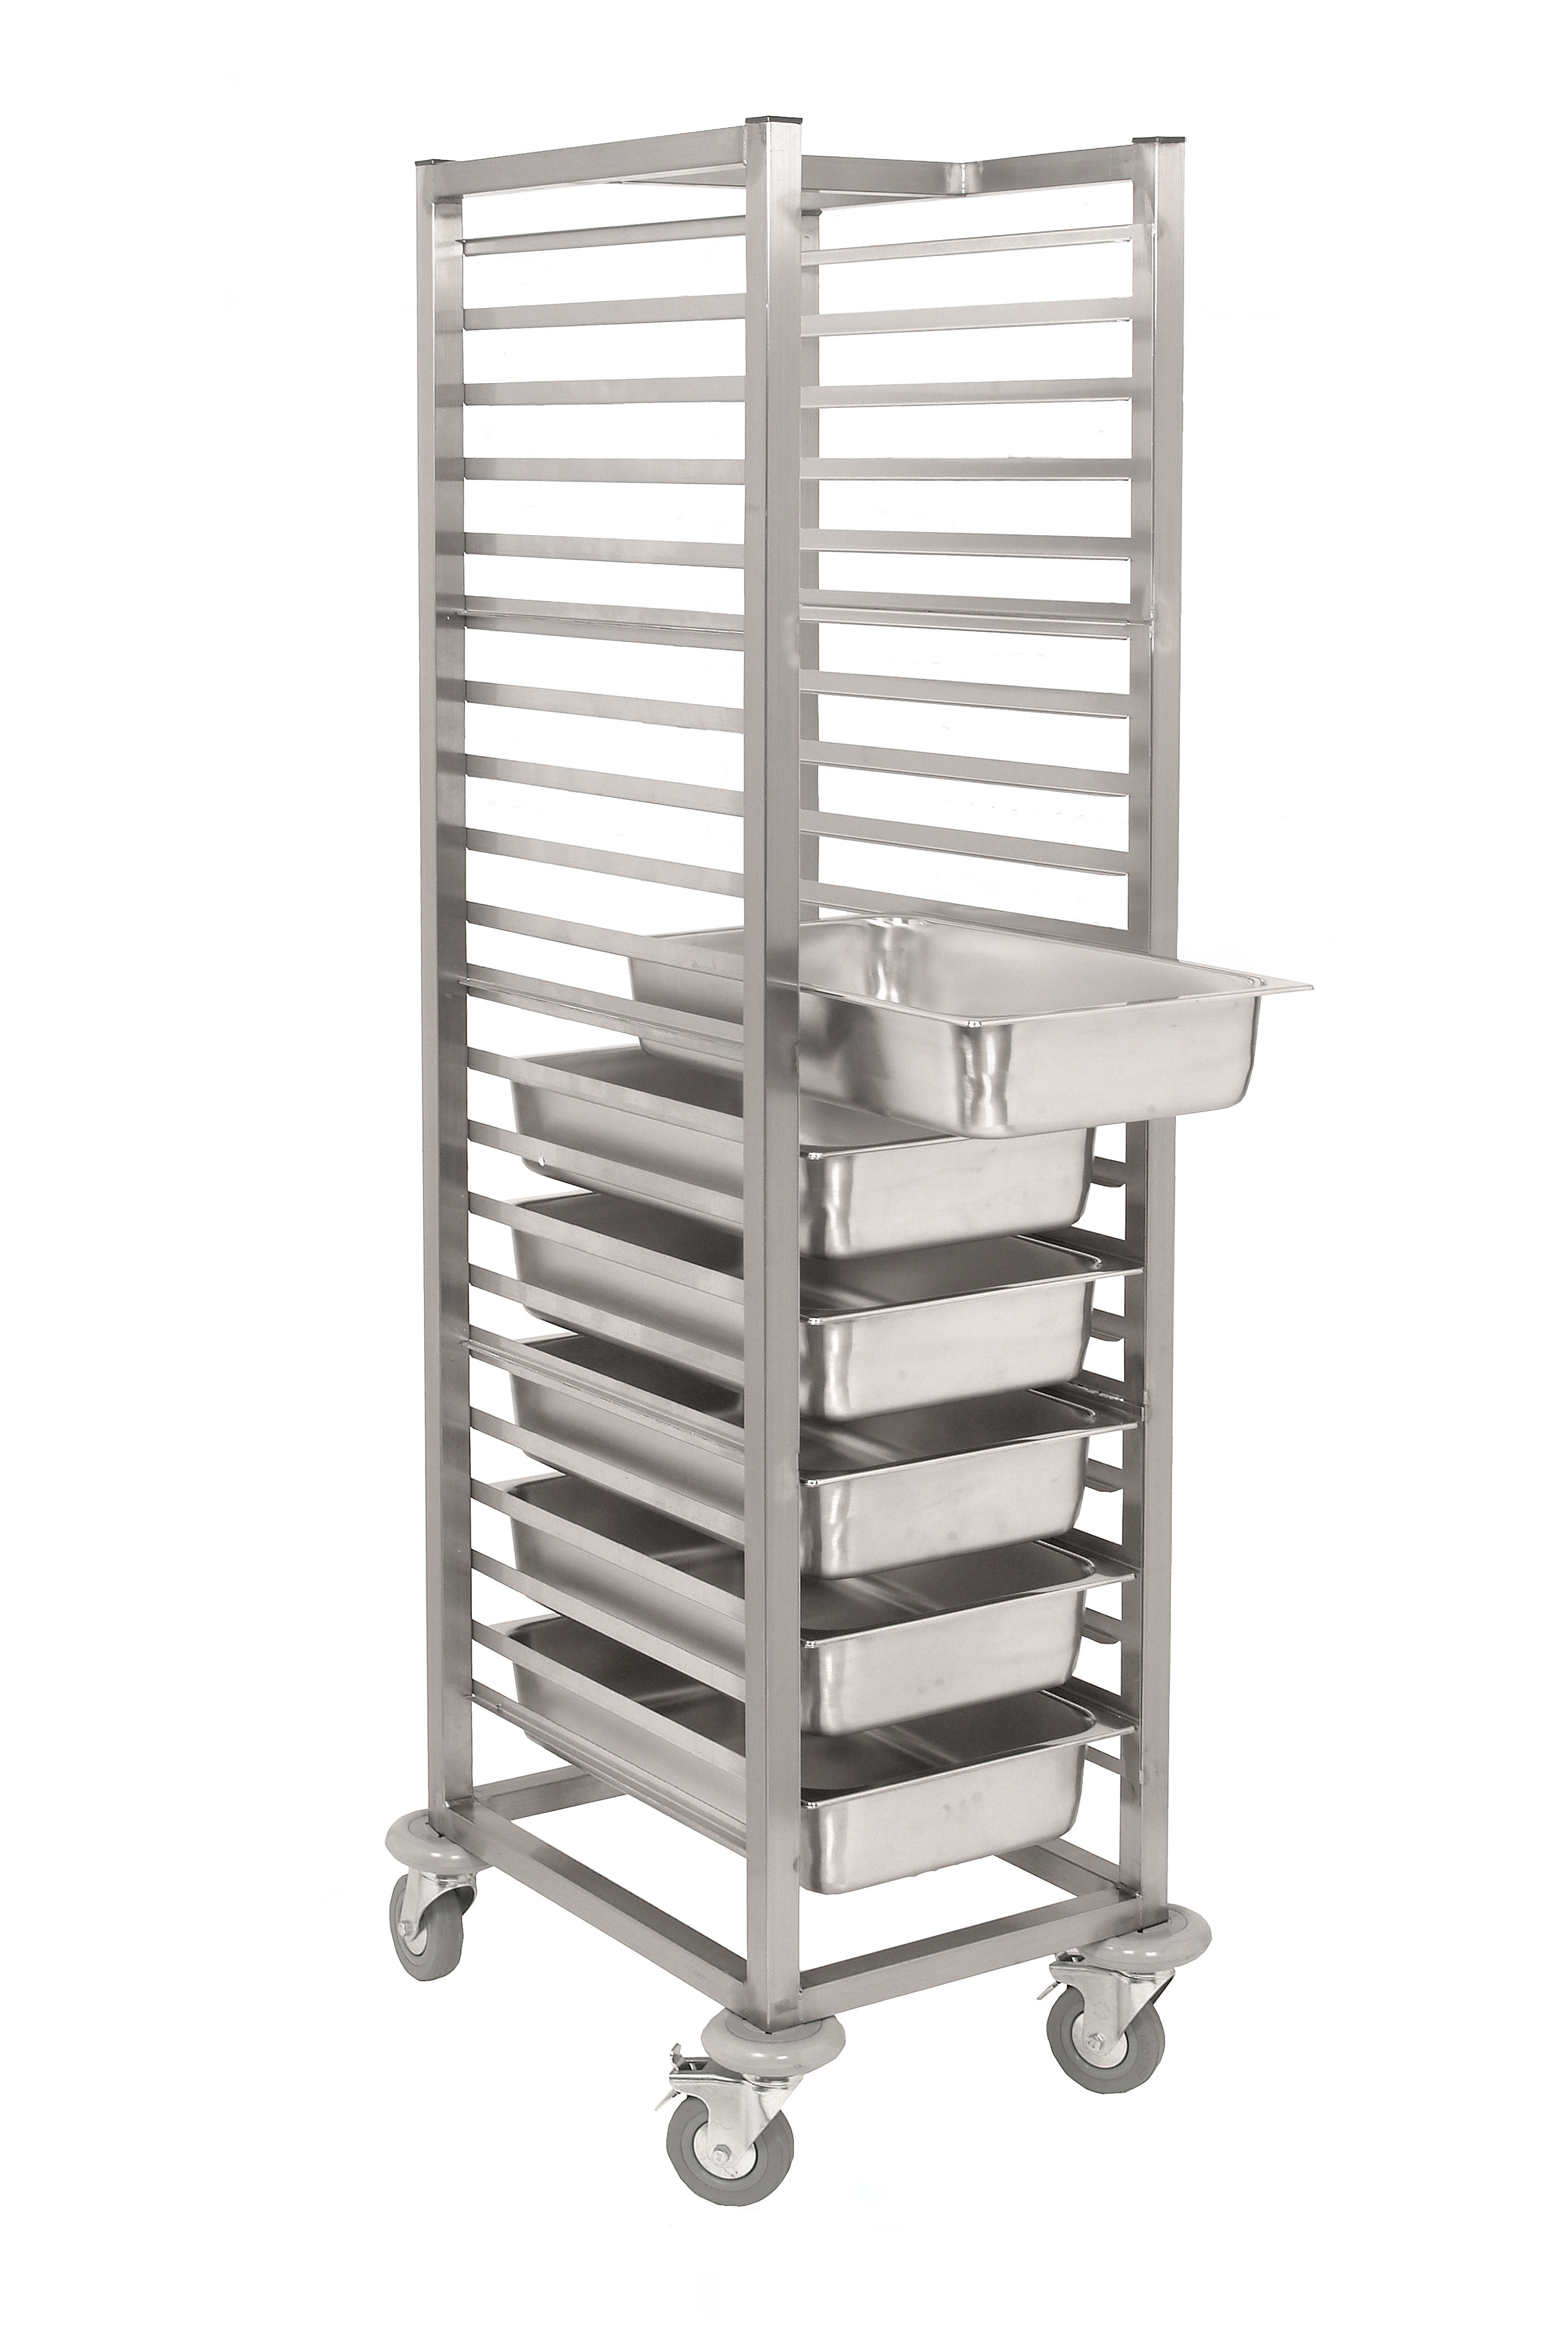 Stainless Steel Gastronorm Tray Trolley Sct900 Parry